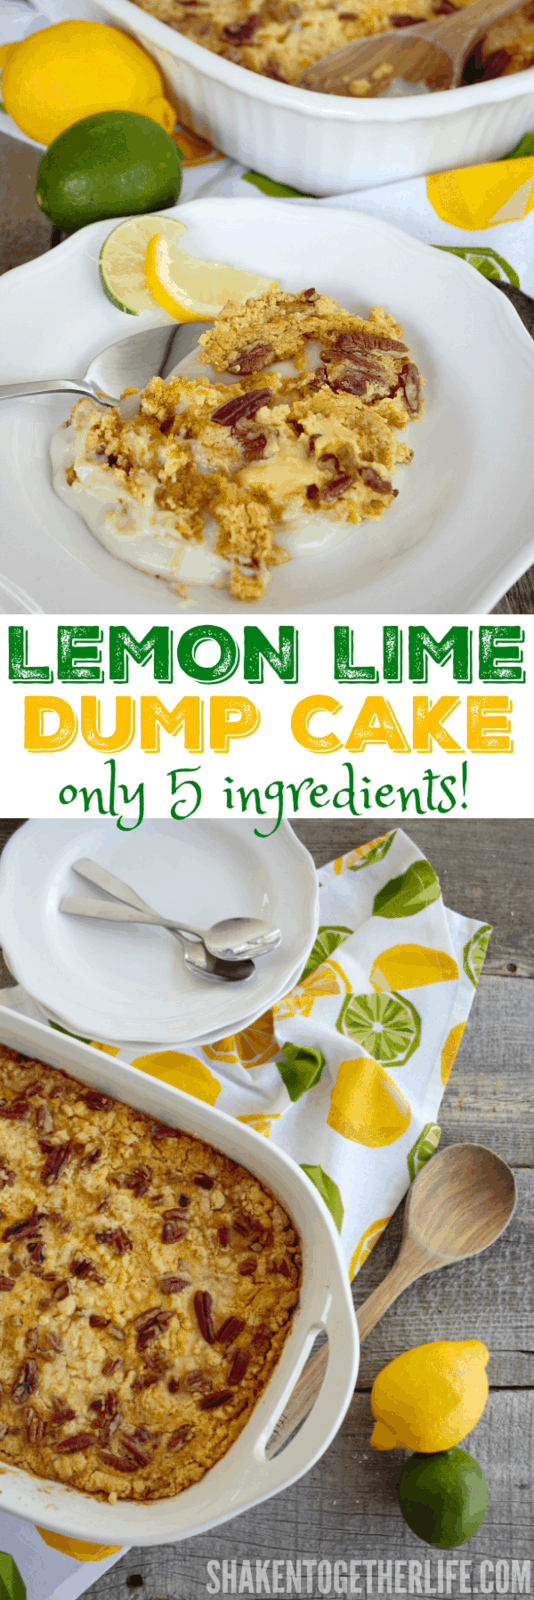 With only 5 ingredients, this Lemon Lime Dump Cake could not be easier to make! You will love the BIG lemon lime flavor!